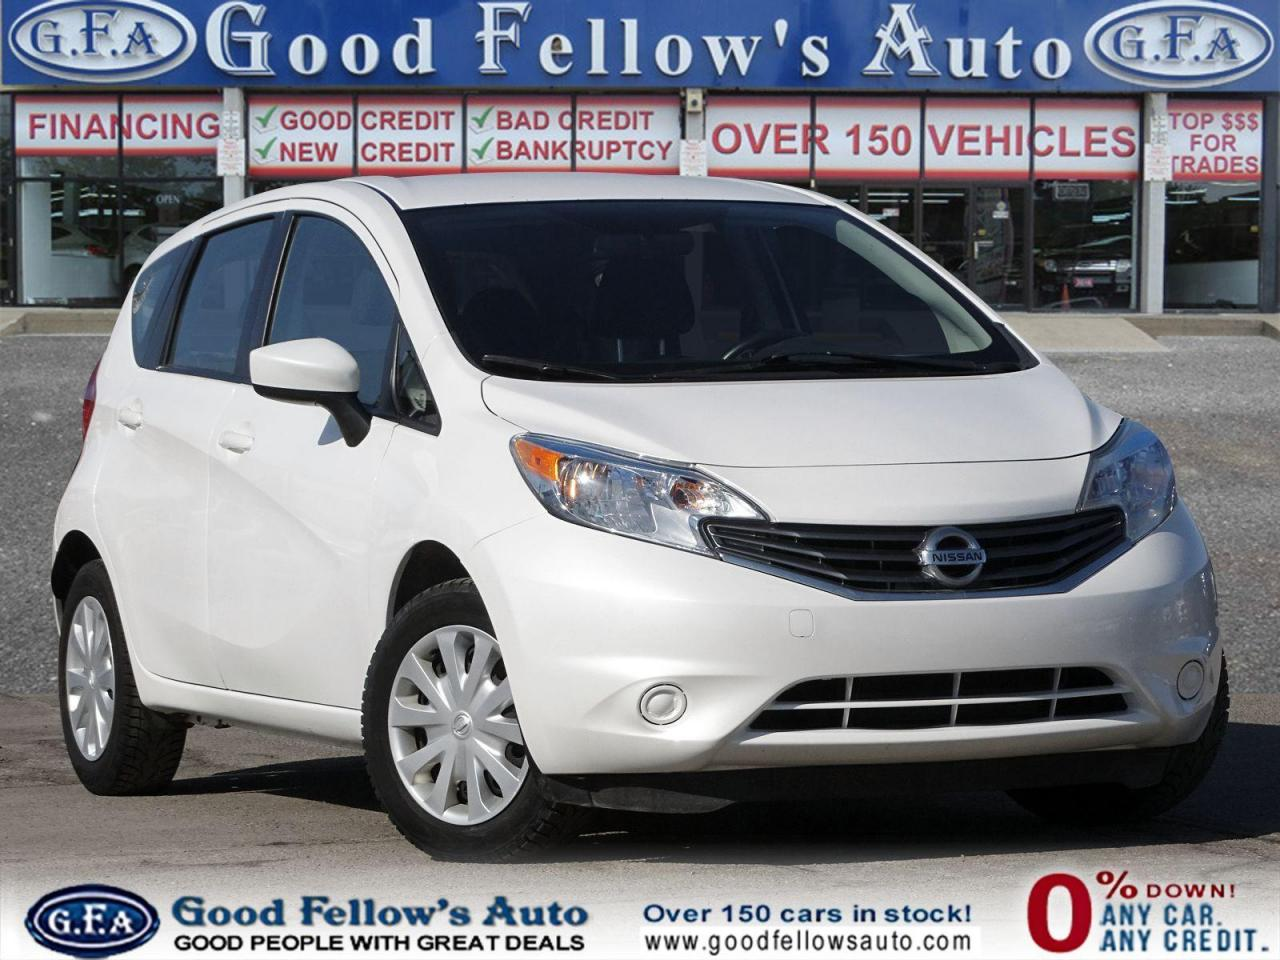 used 2016 Nissan Versa Note car, priced at $8,400